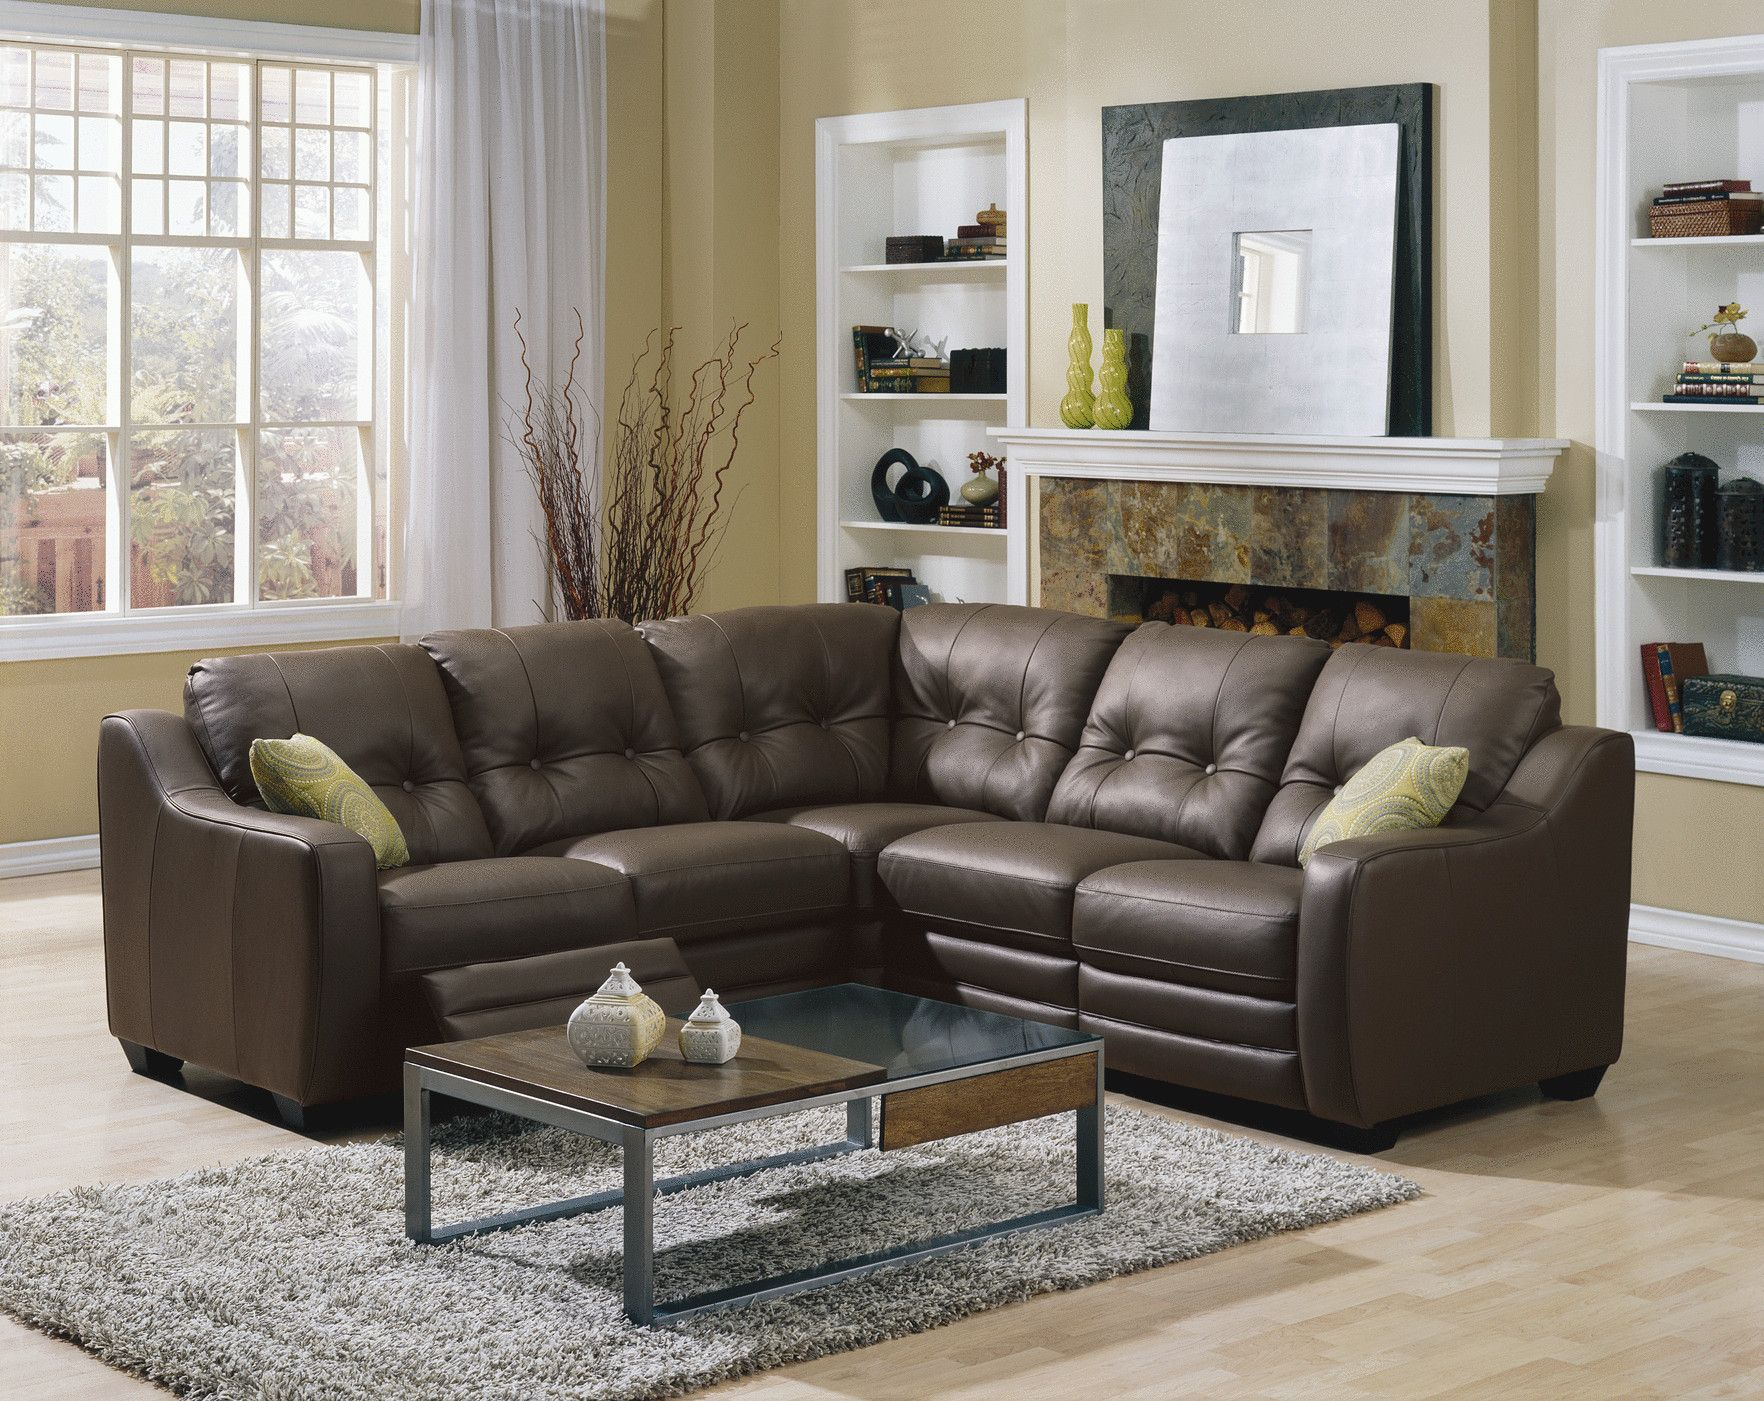 404 Error 404 Small Sectional Sofa Sectional Sofa With